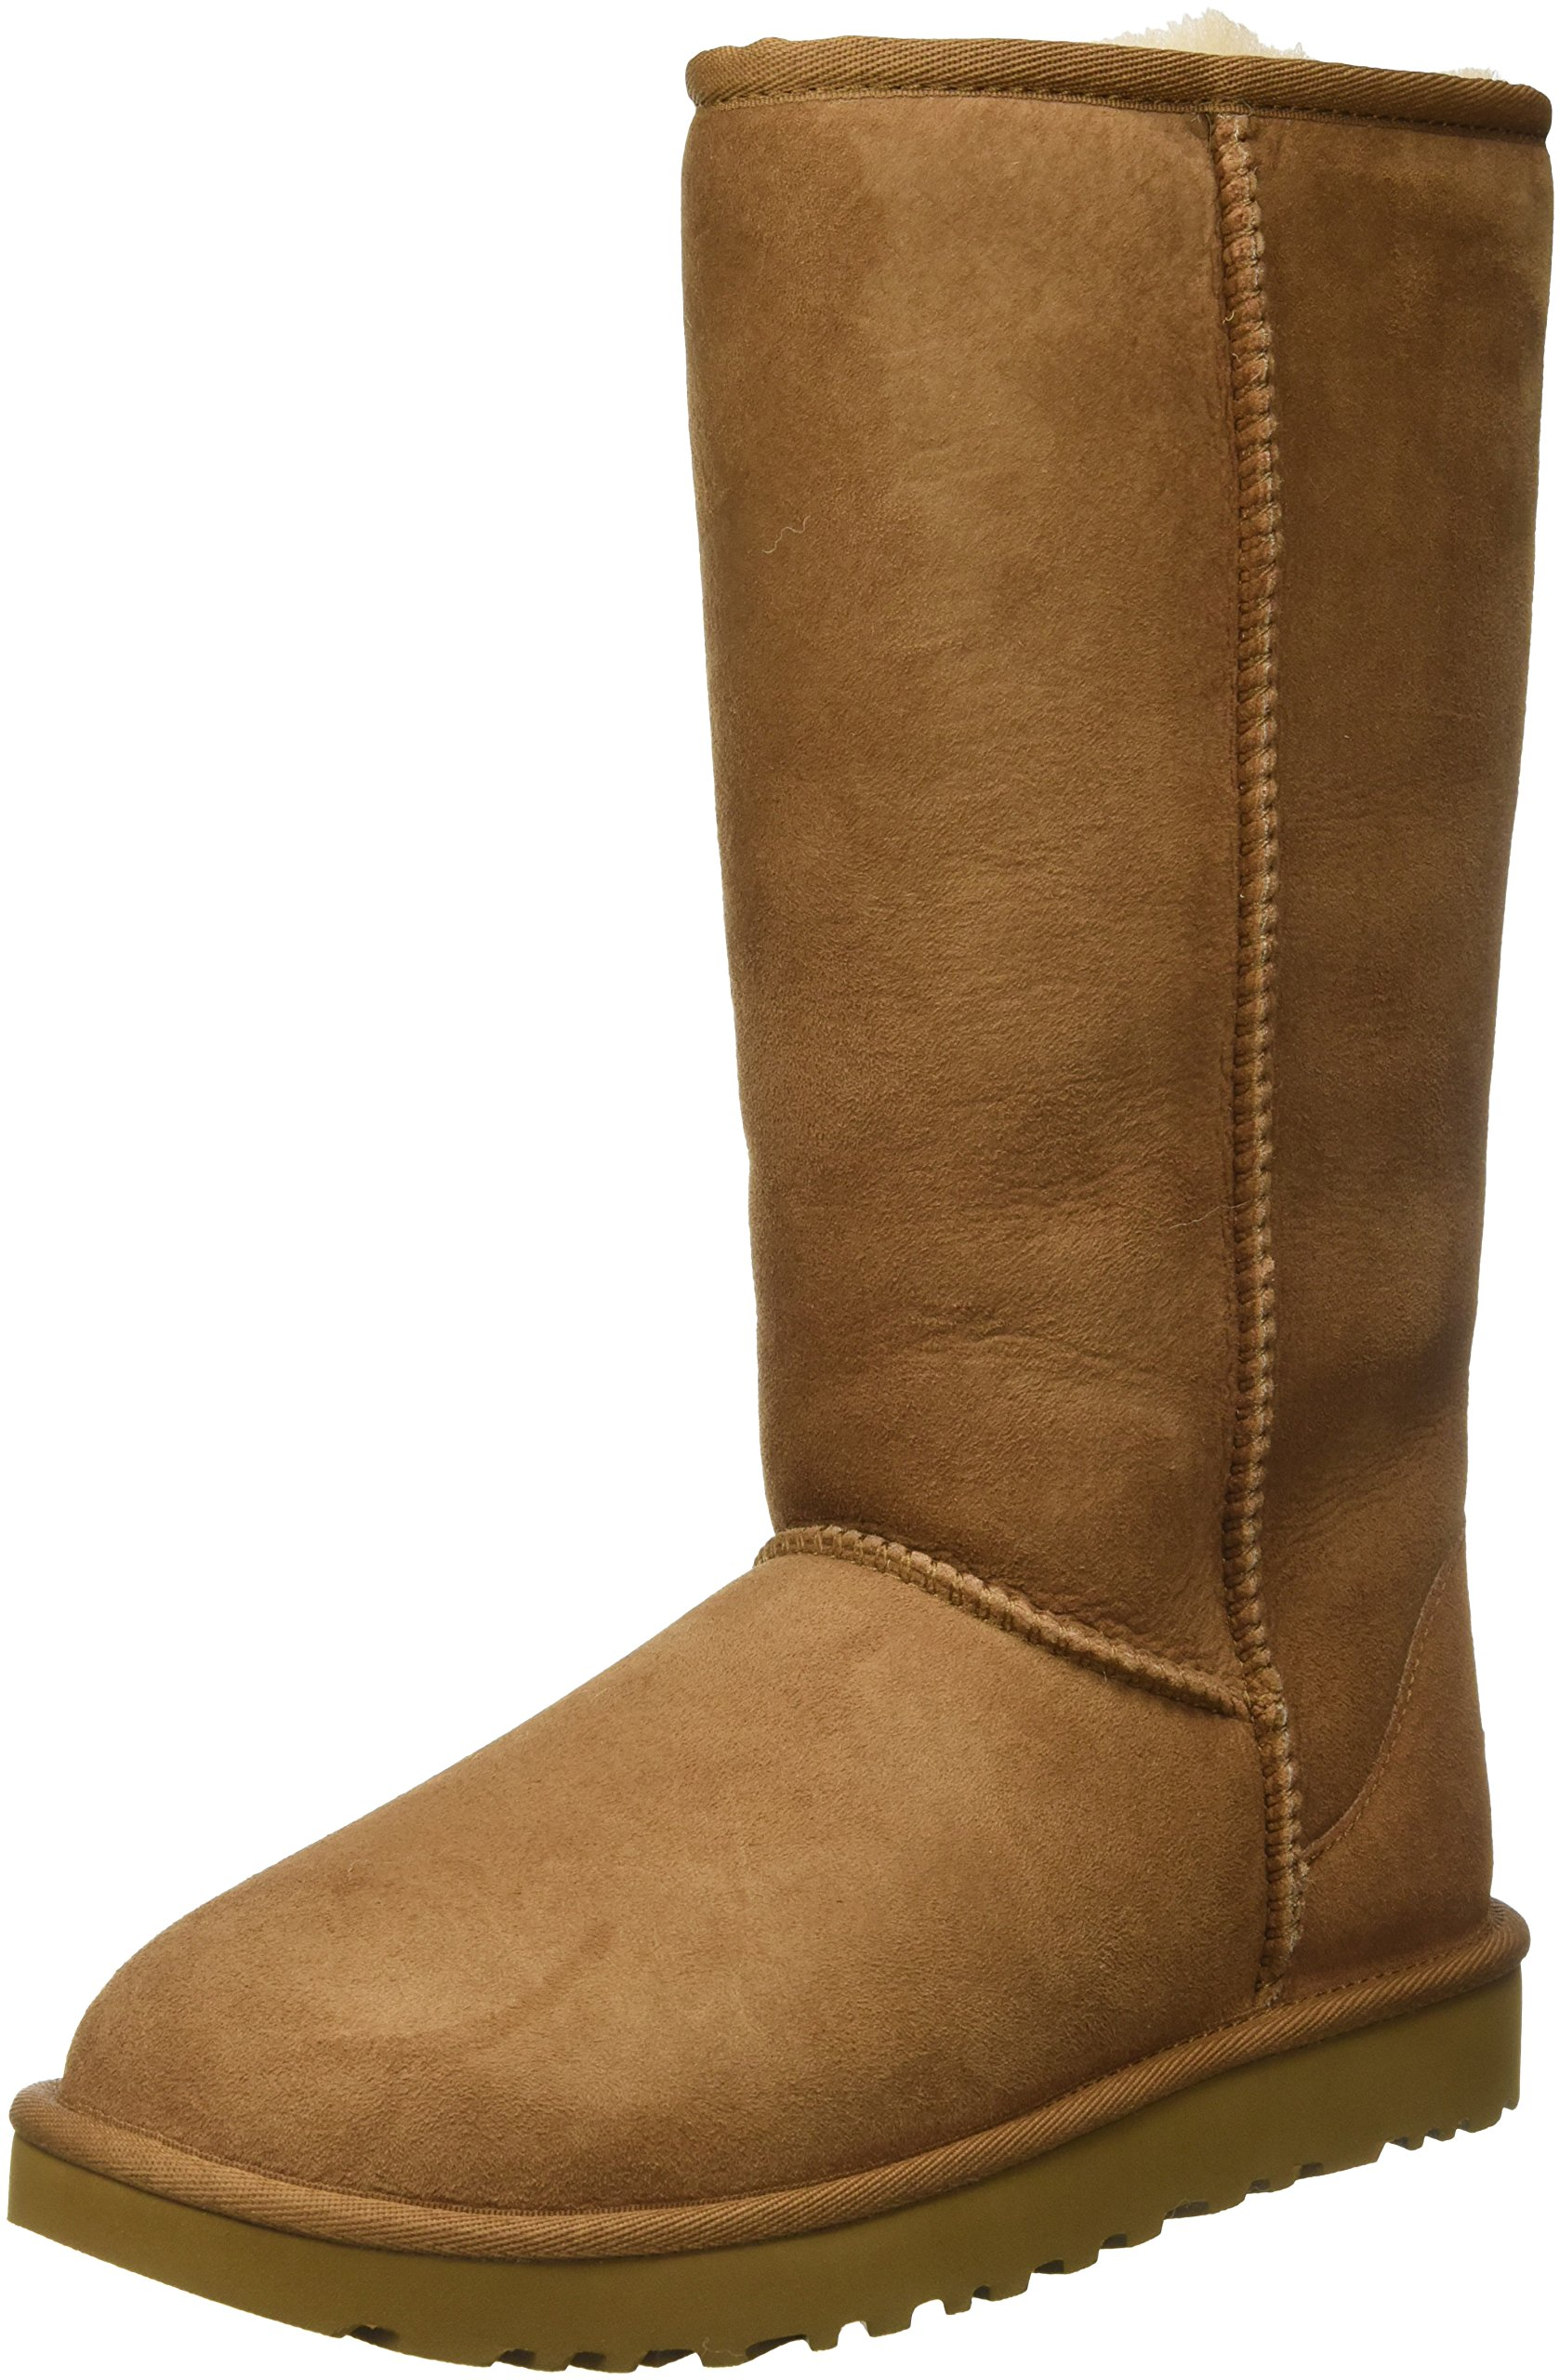 UGG Women's Classic Tall II Winter Boot, Chestnut, 7 B US by UGG